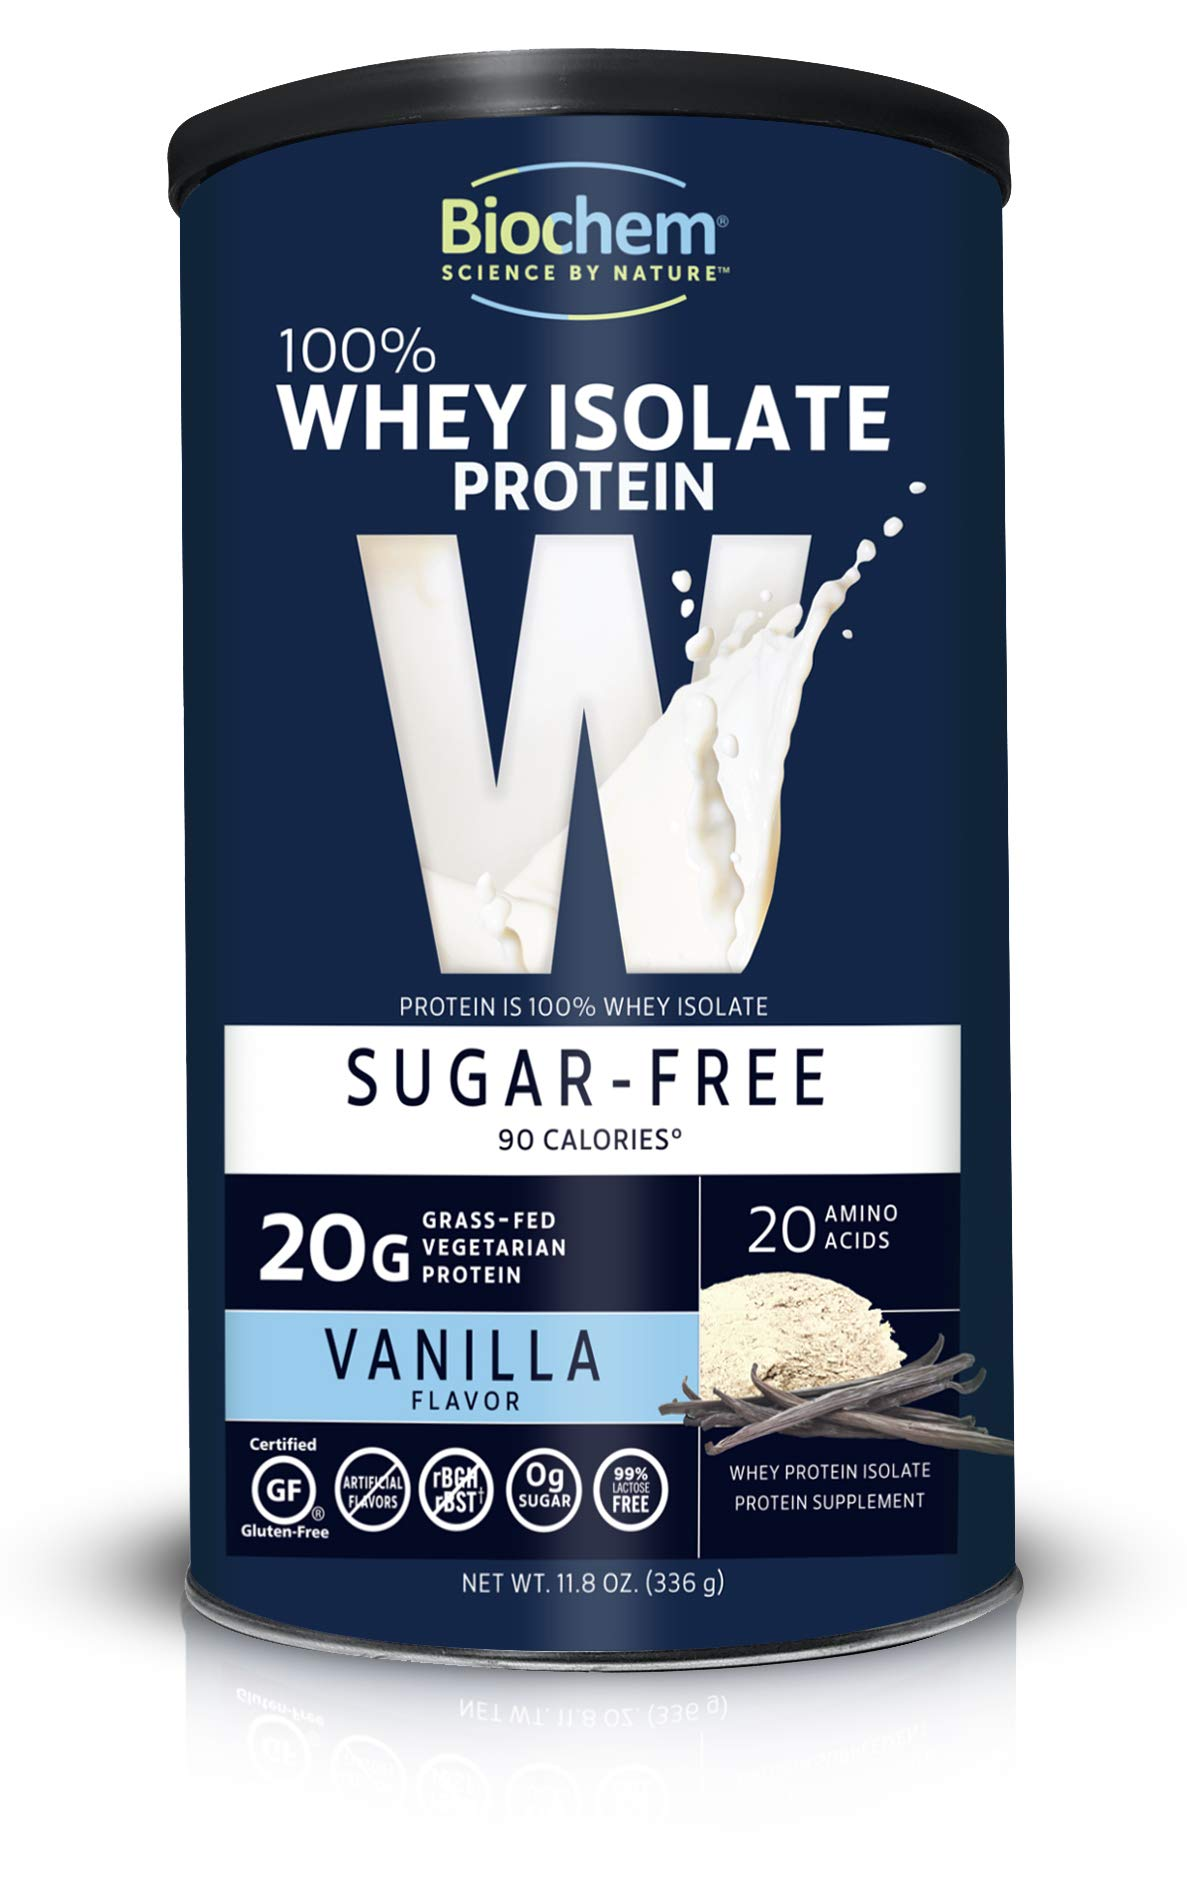 Biochem Sports Whey Protein Powder Sugar Free Vanilla - 13.7 oz